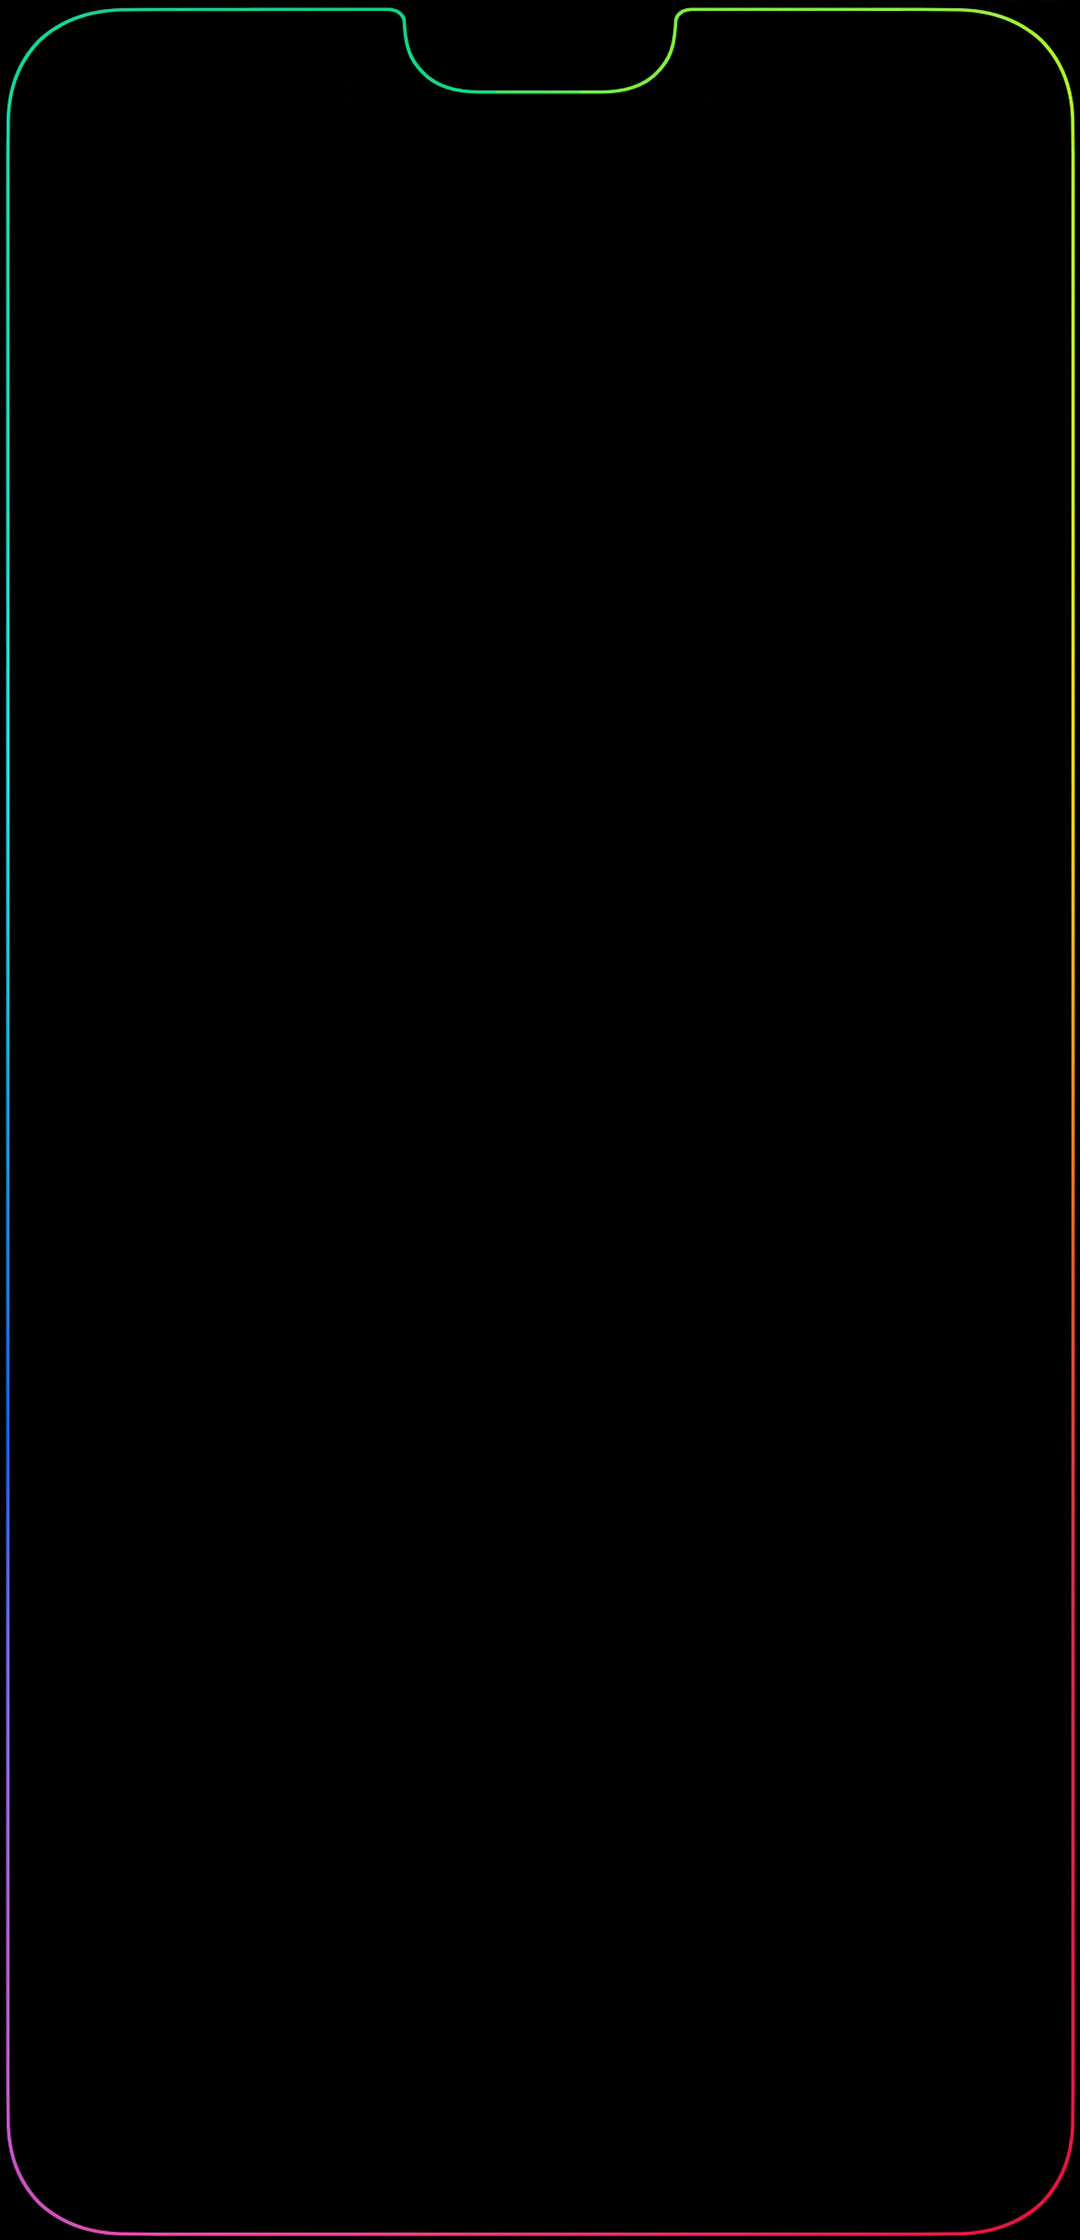 1080x2240 An awesome wallpaper for the p20 pro embracing the notch. Thank you  /u/kinobe for editing it to fit ...